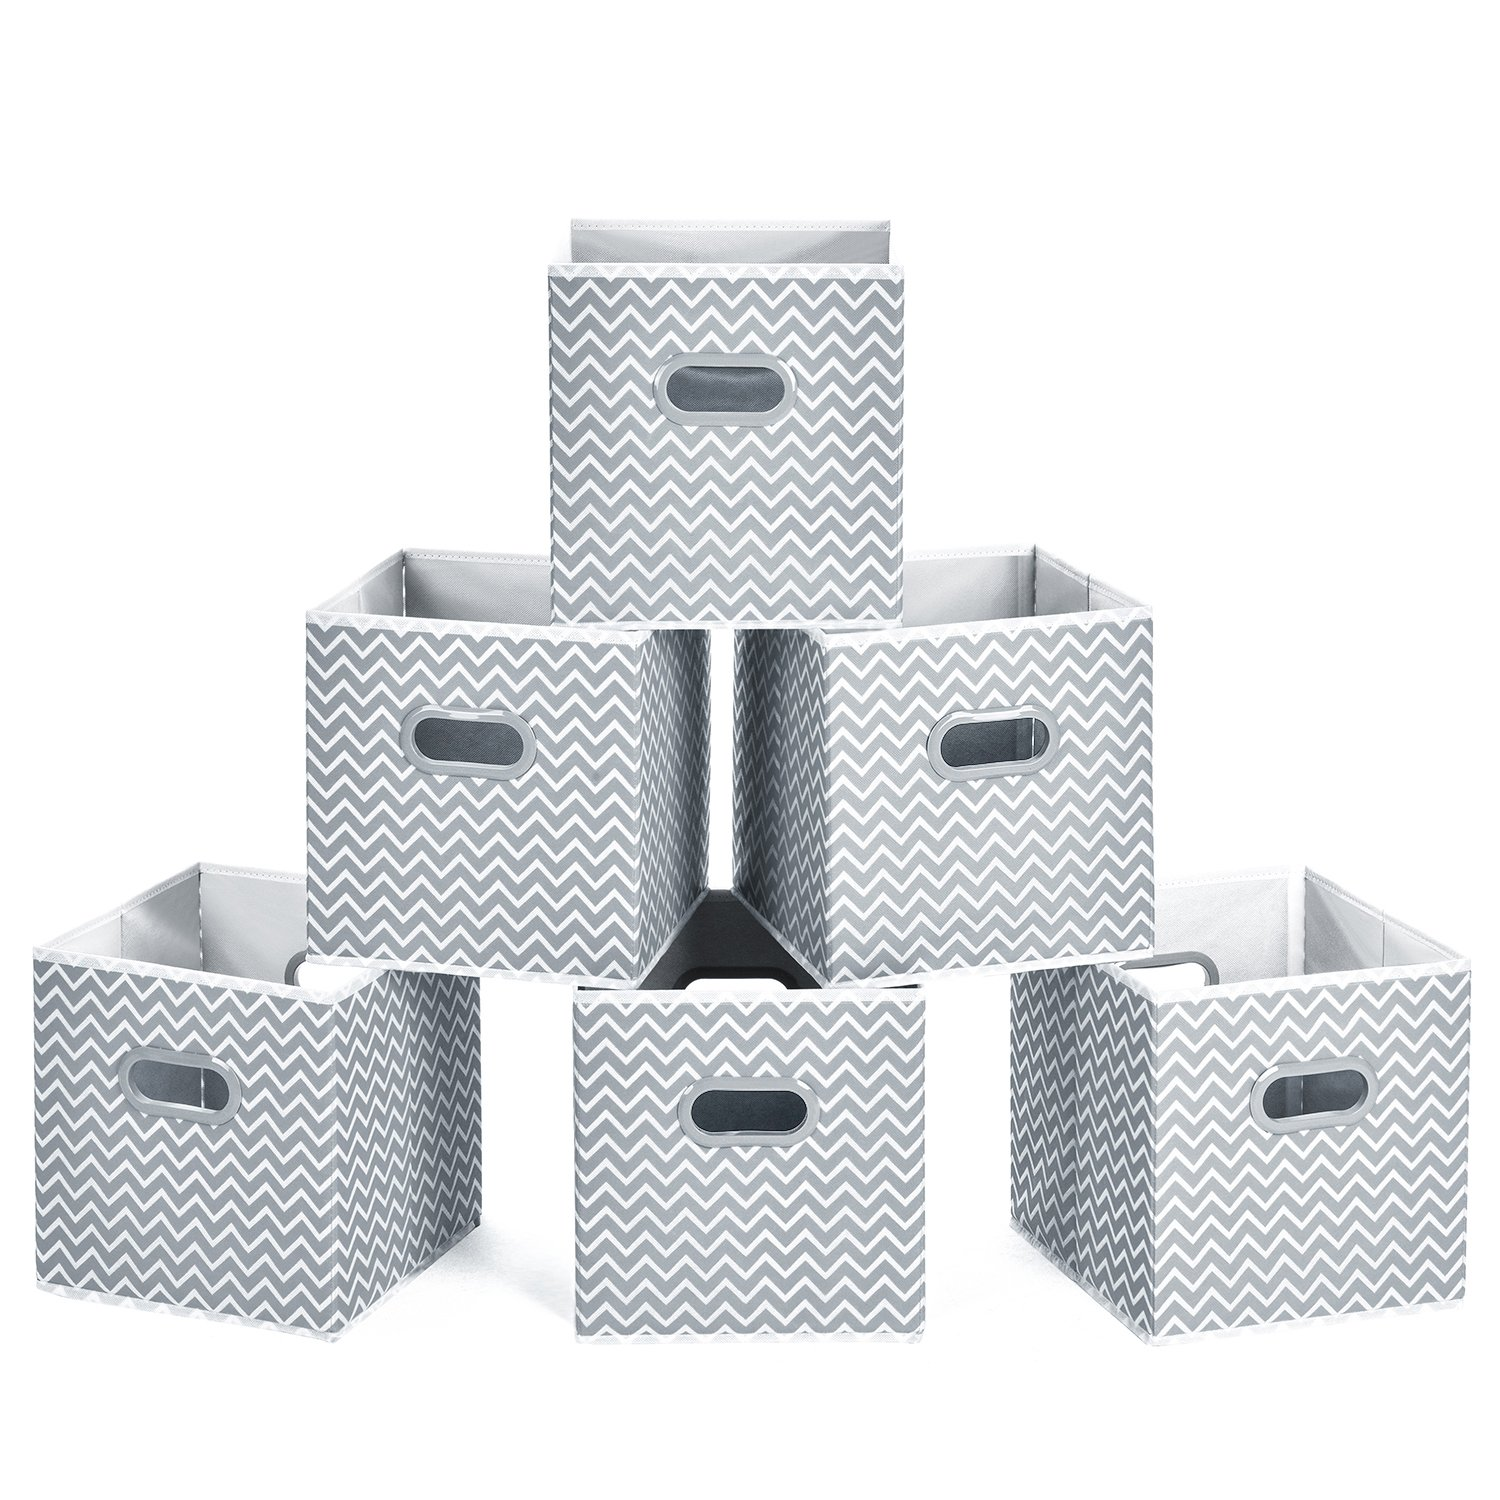 MaidMAX Fabric Storage Box, Set of 6 Foldable Organiser Cubes Basket Bin Drawers Containers with Dual Plastic Handles for Home Office Nursery Organisation, Grey Chevron 903111-UK-3